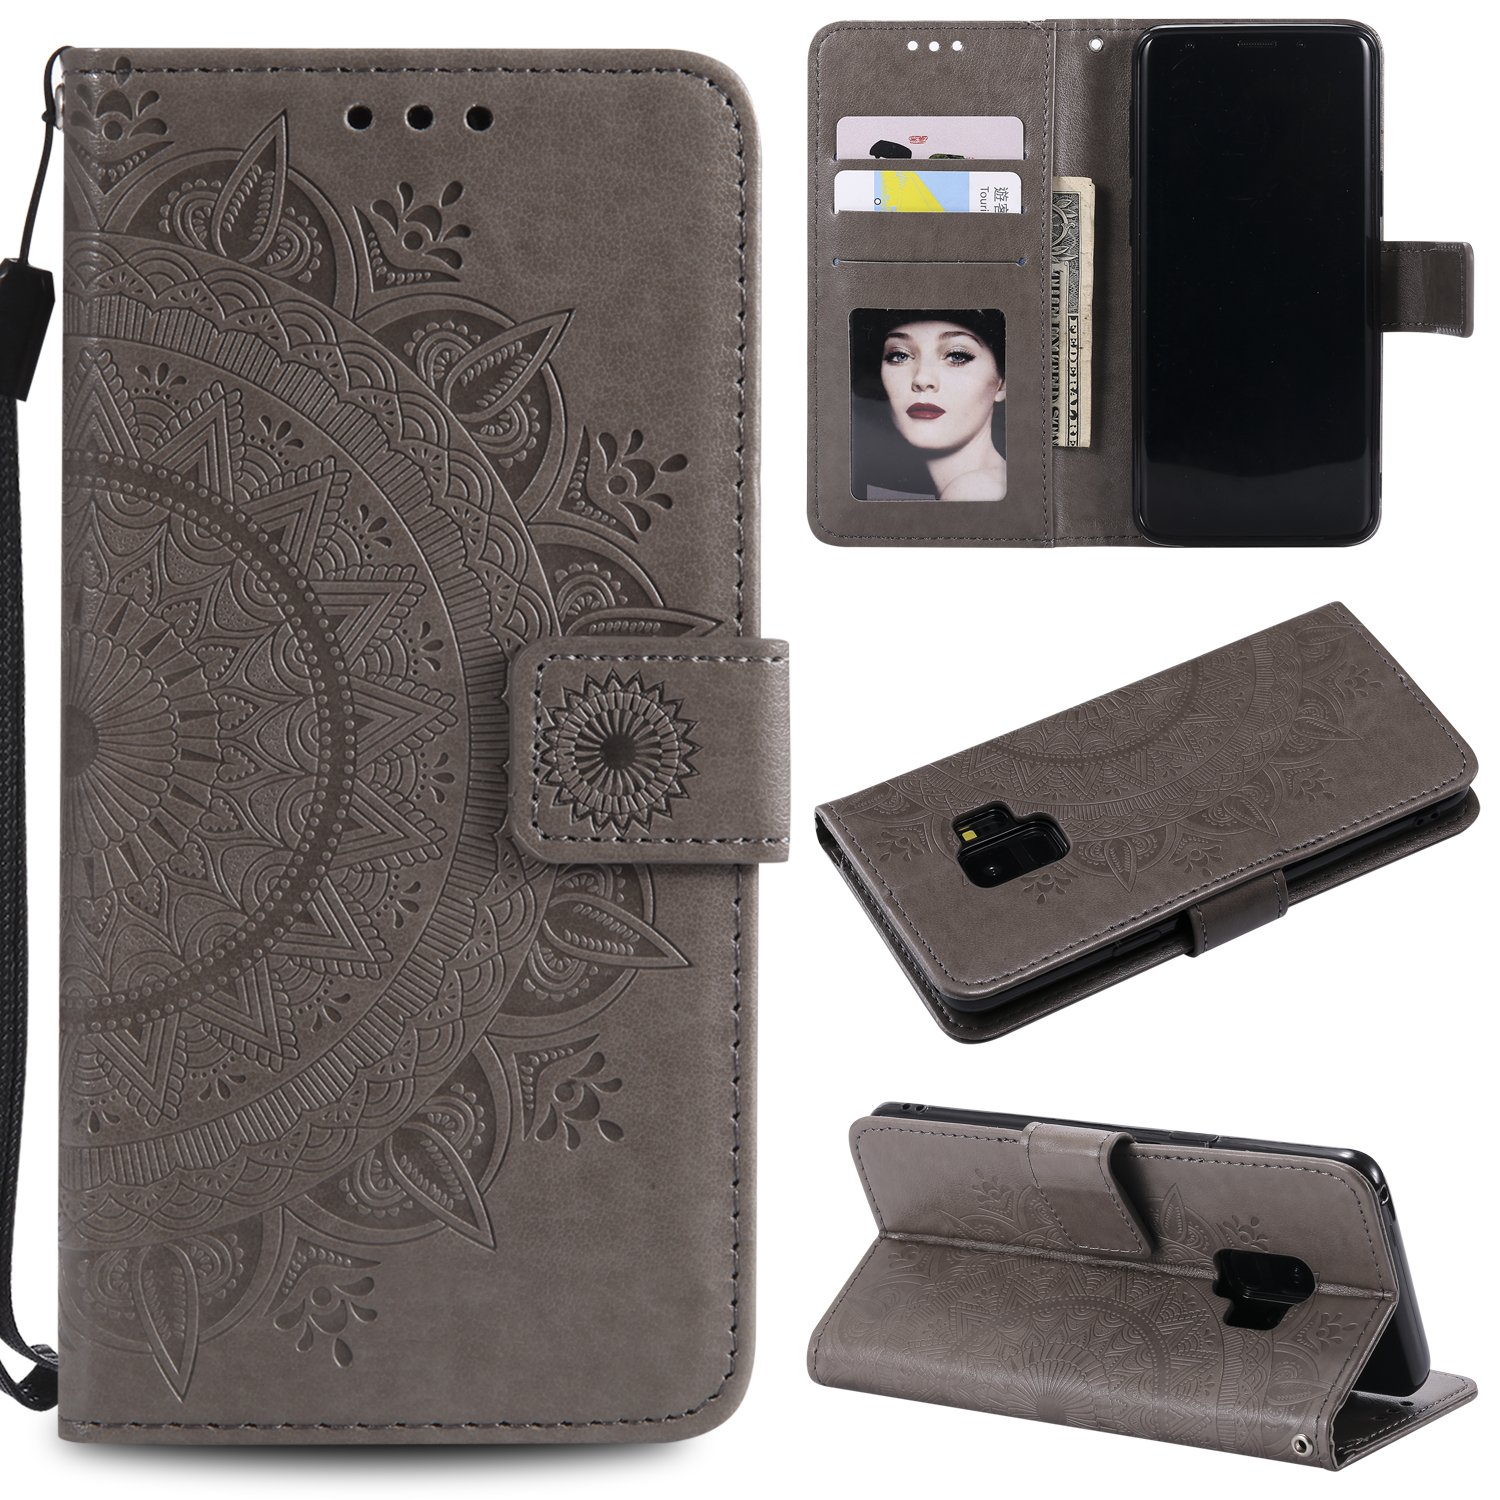 Galaxy S9 Floral Wallet Case,Galaxy S9 Strap Flip Case,Leecase Embossed Totem Flower Design Pu Leather Bookstyle Stand Flip Case for Samsung Galaxy S9-Grey